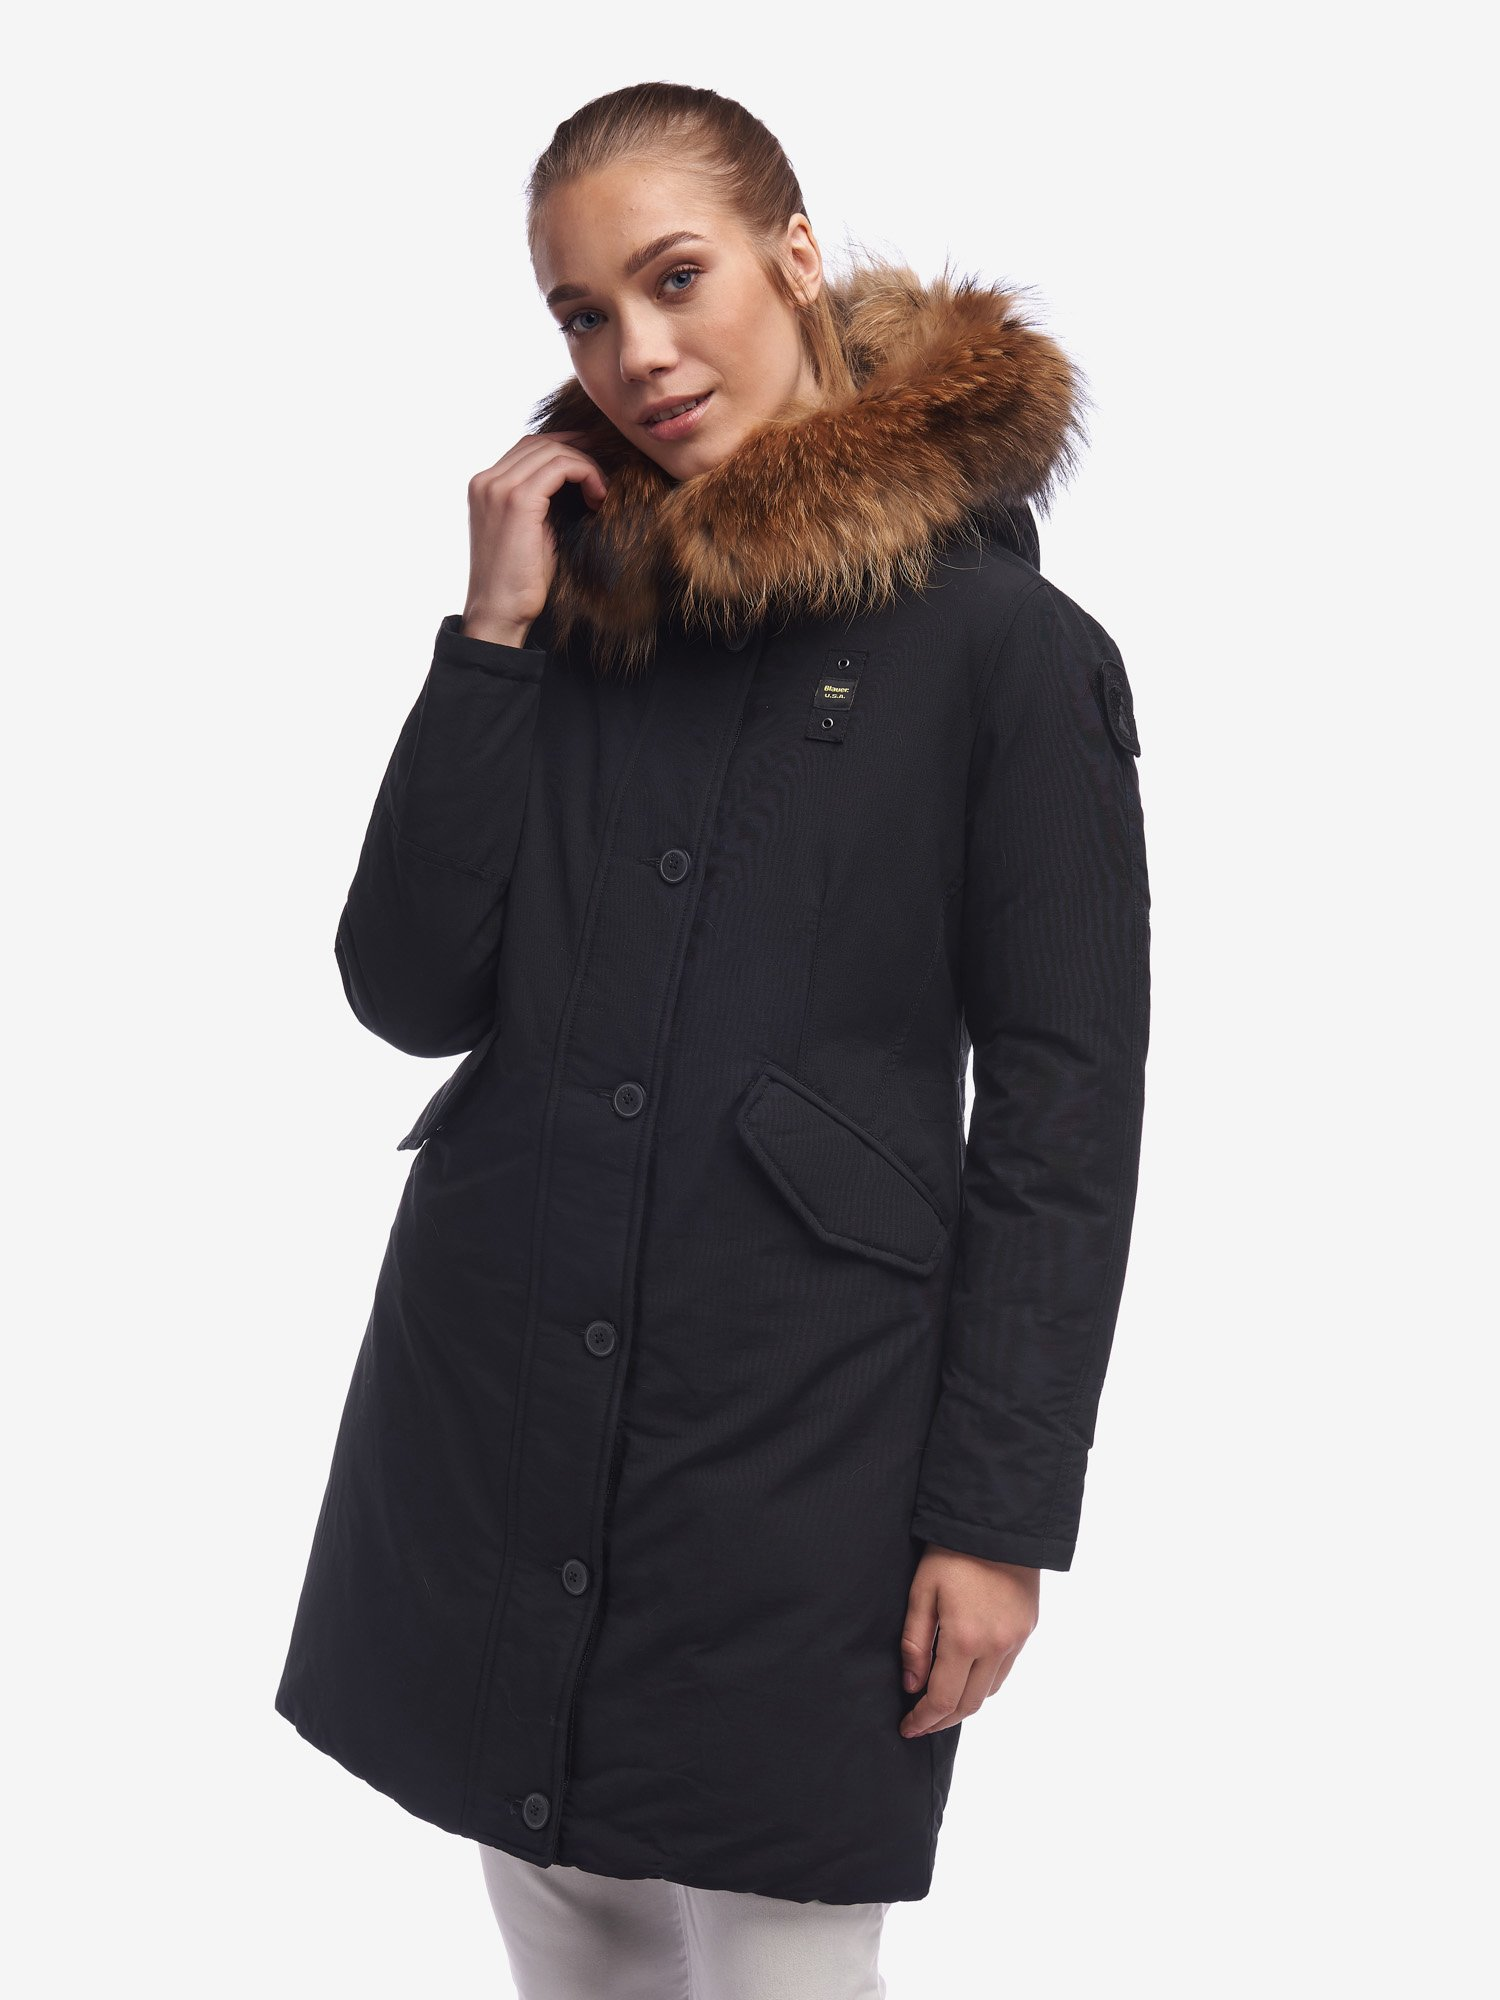 Blauer - WOODS PARKA IN LIGHT TASLAN - Black - Blauer